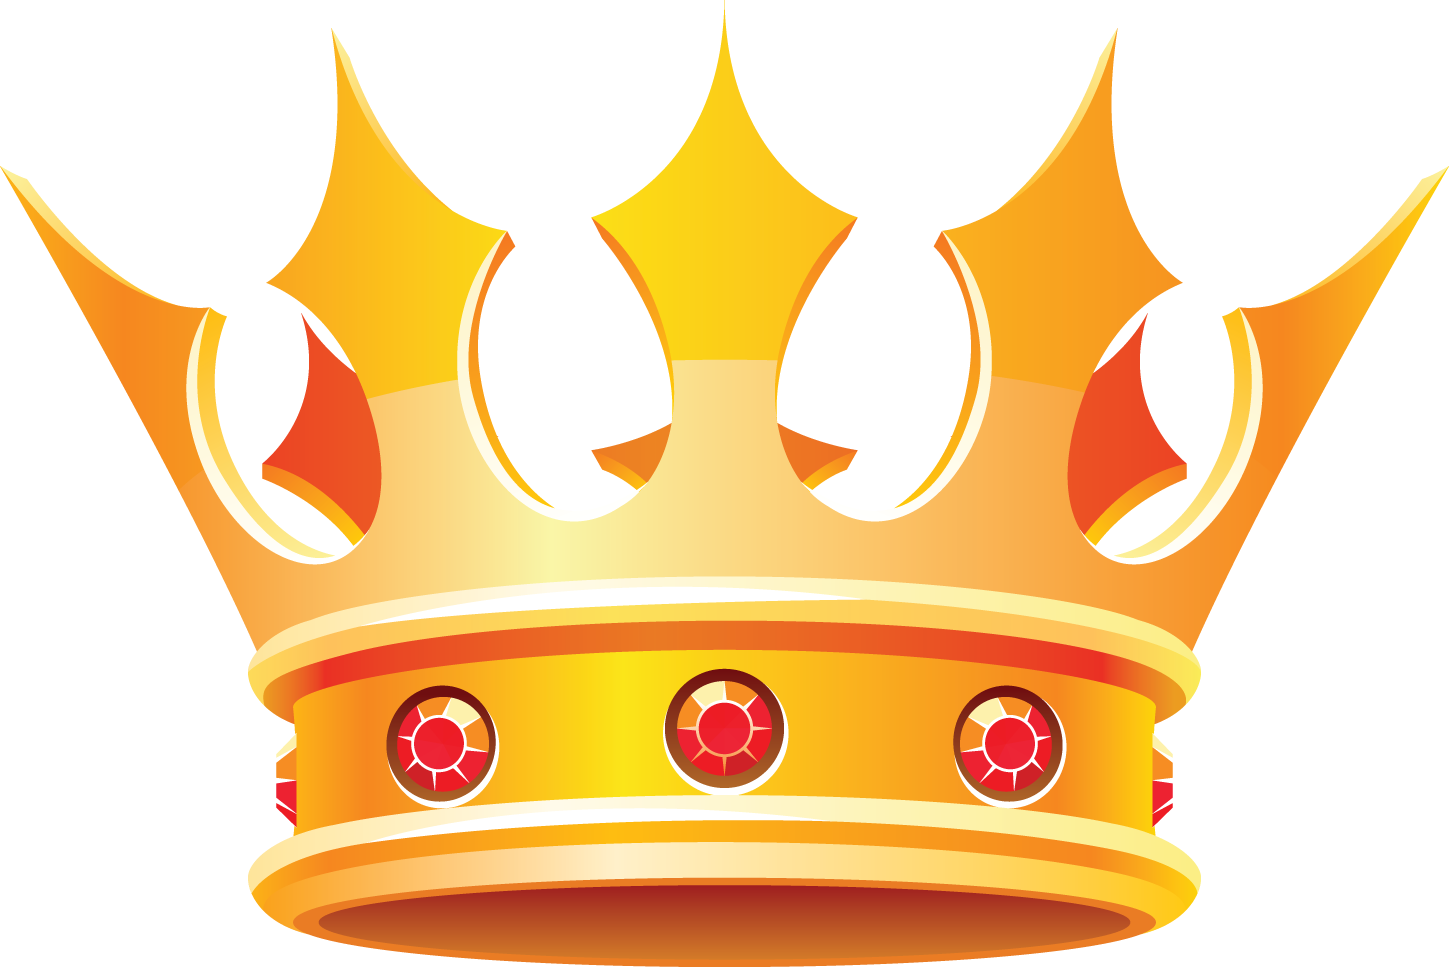 king queen crown clip art prince princess party pinterest rh pinterest co uk gold king crown clipart king crown clipart no background